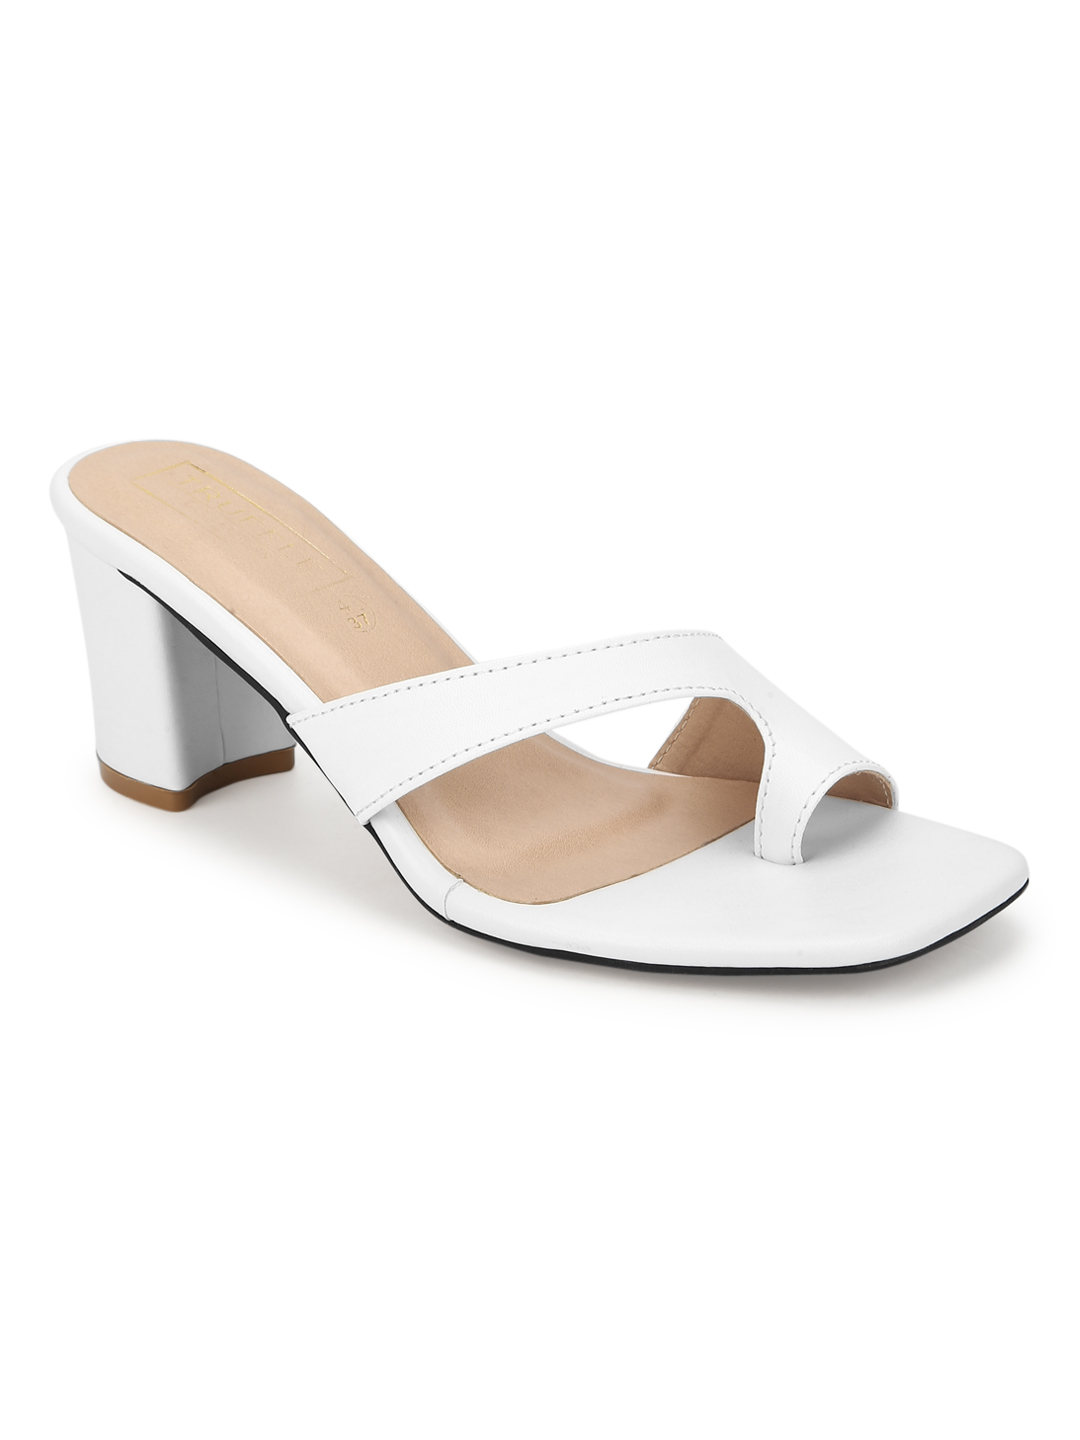 Truffle Collection | White PU Square Toe Block Heels Sandals